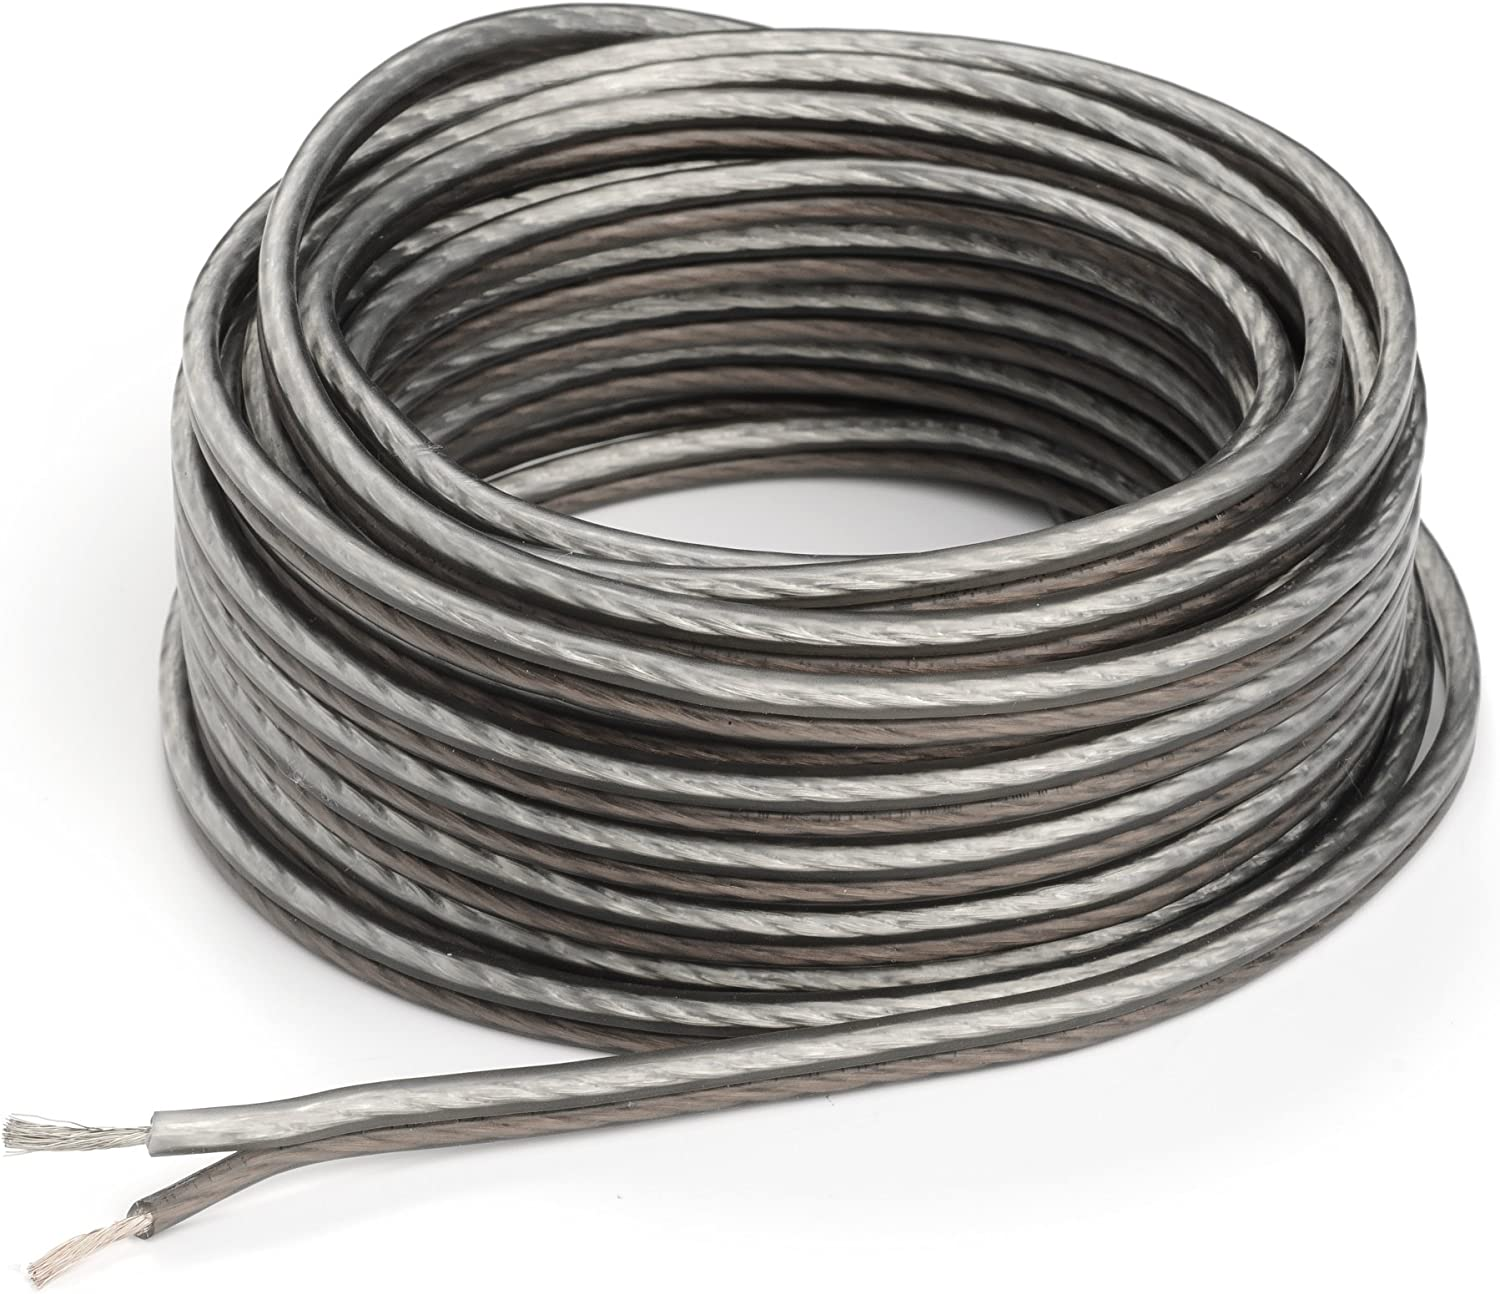 Carwires SW2000-25 12-Awg 2-Conductor Car Speaker Wire 25 Ft.